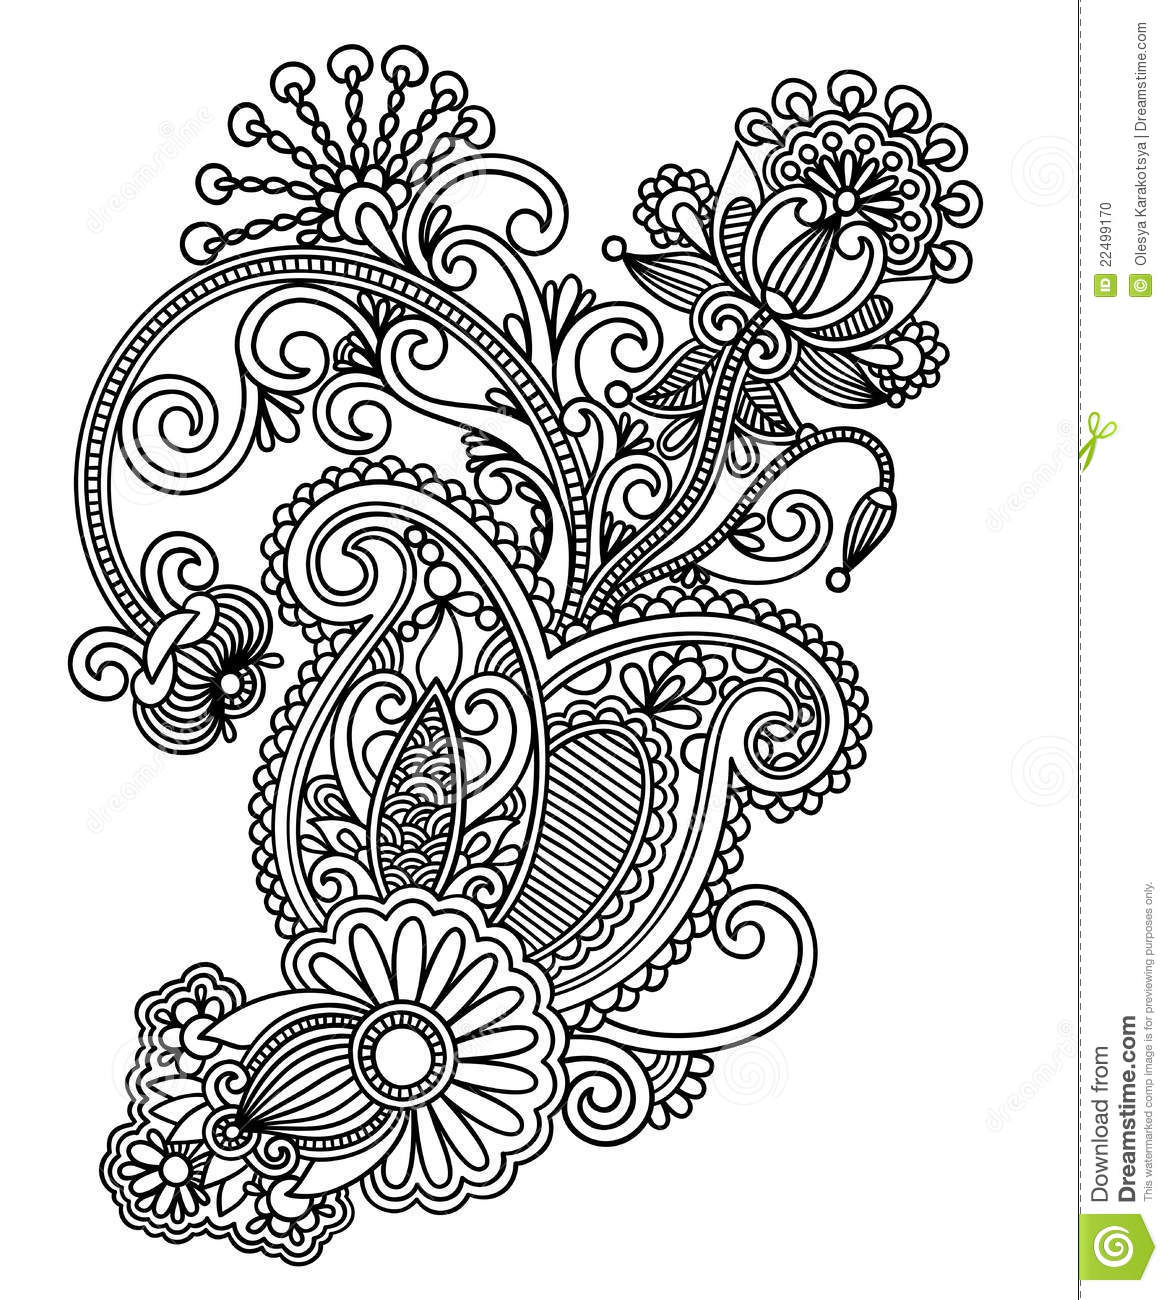 Line Art Design Tutorial : Line art ornate flower design stock vector illustration